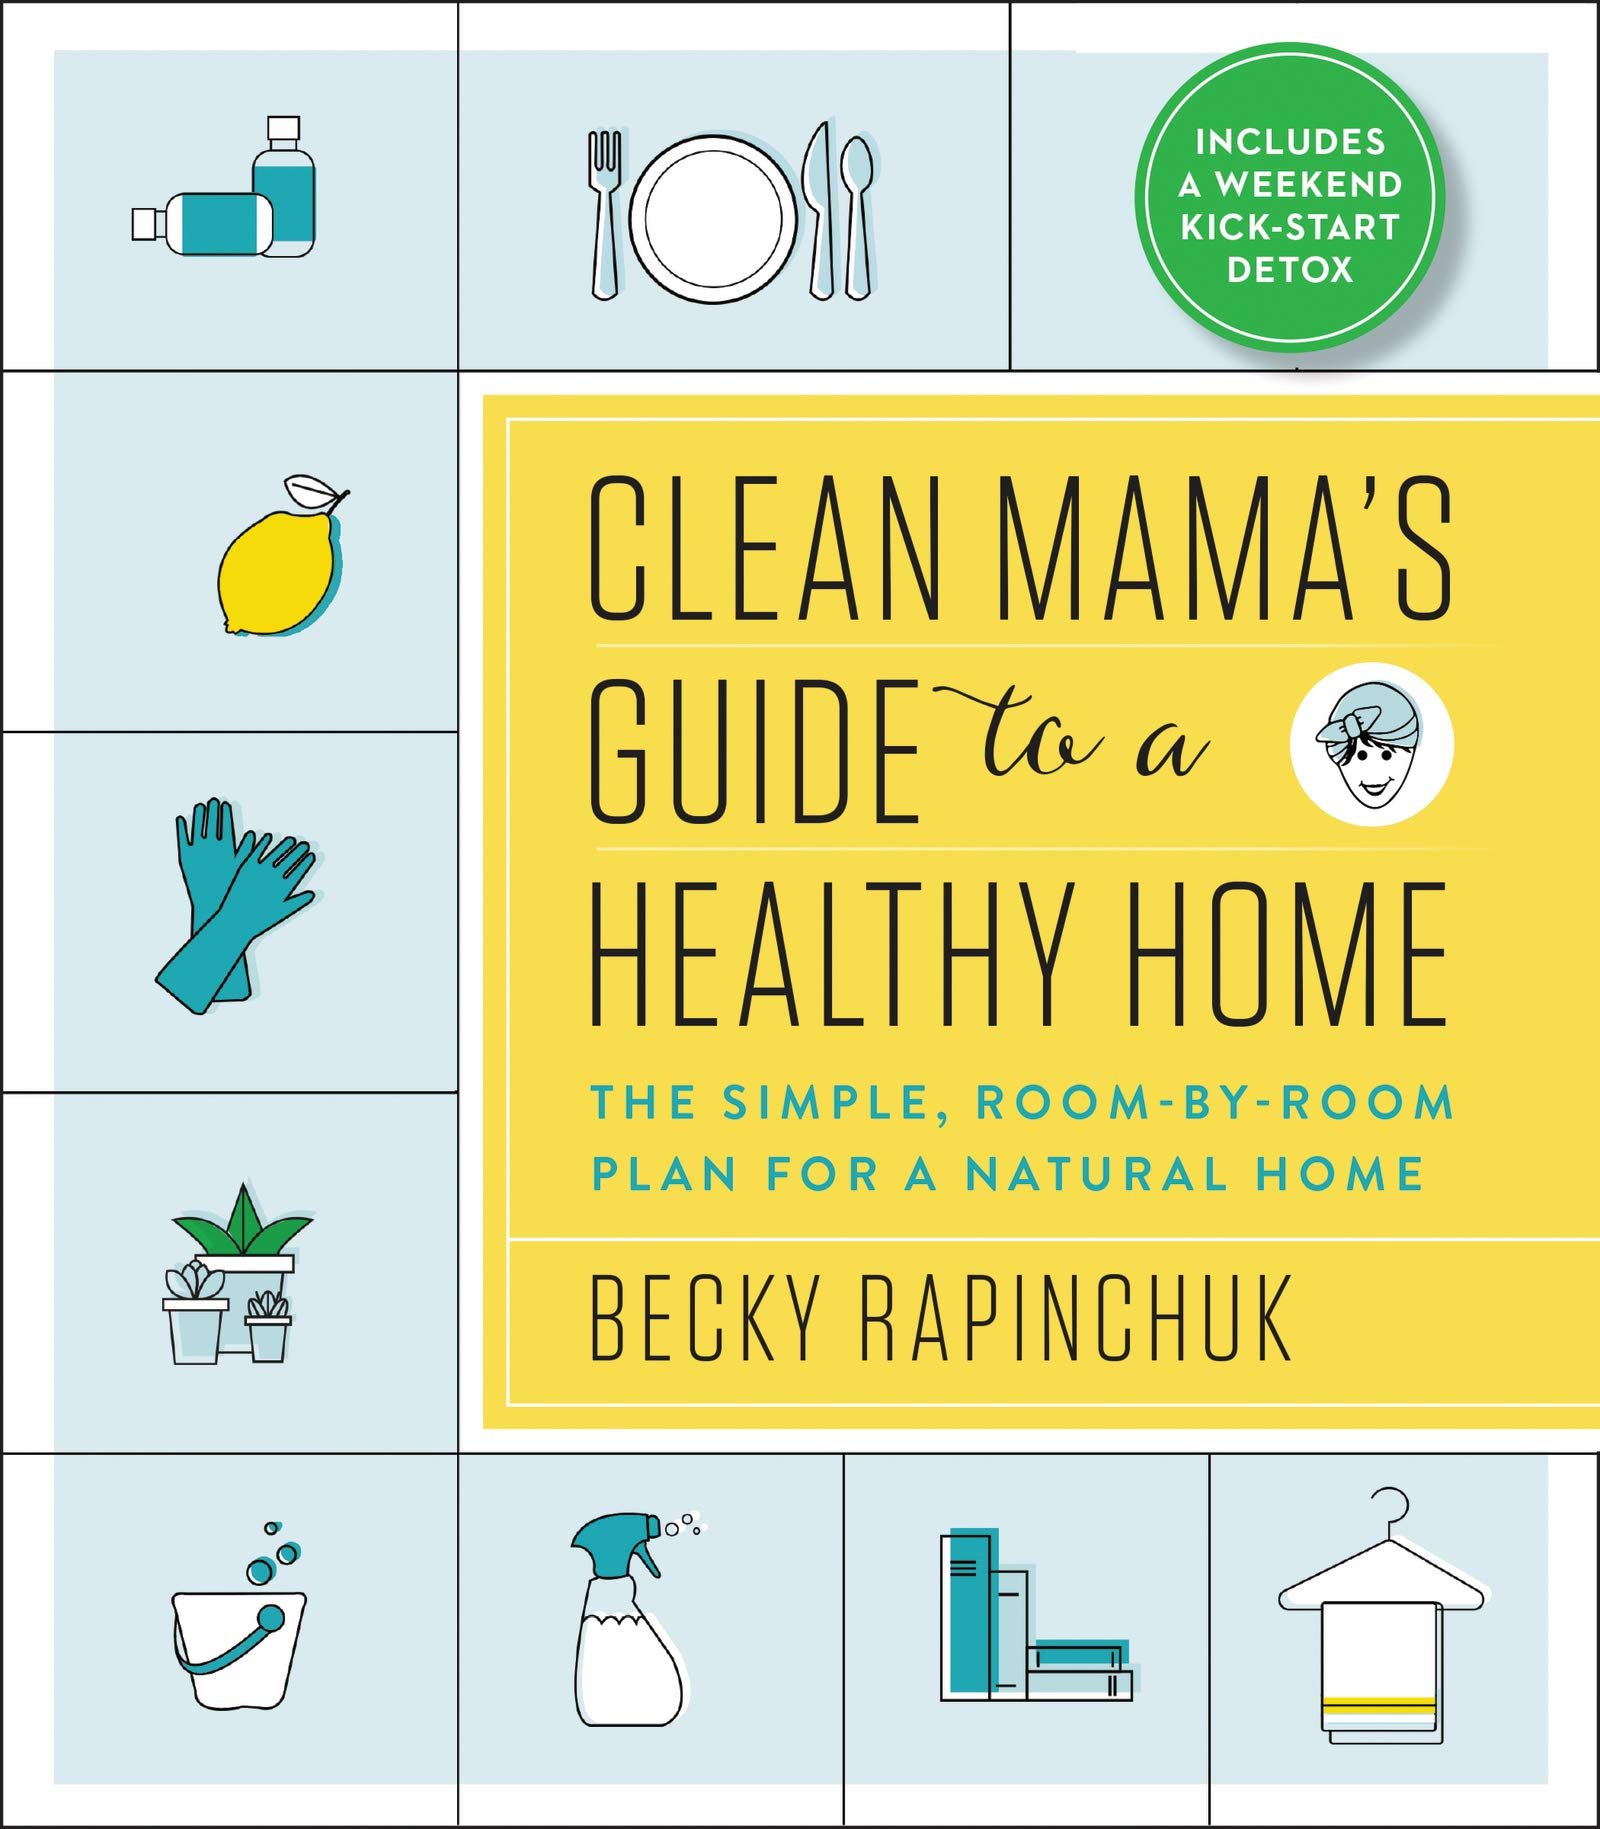 Clean Mama's Guide to a Healthy Home, by Becky Rapinchuk